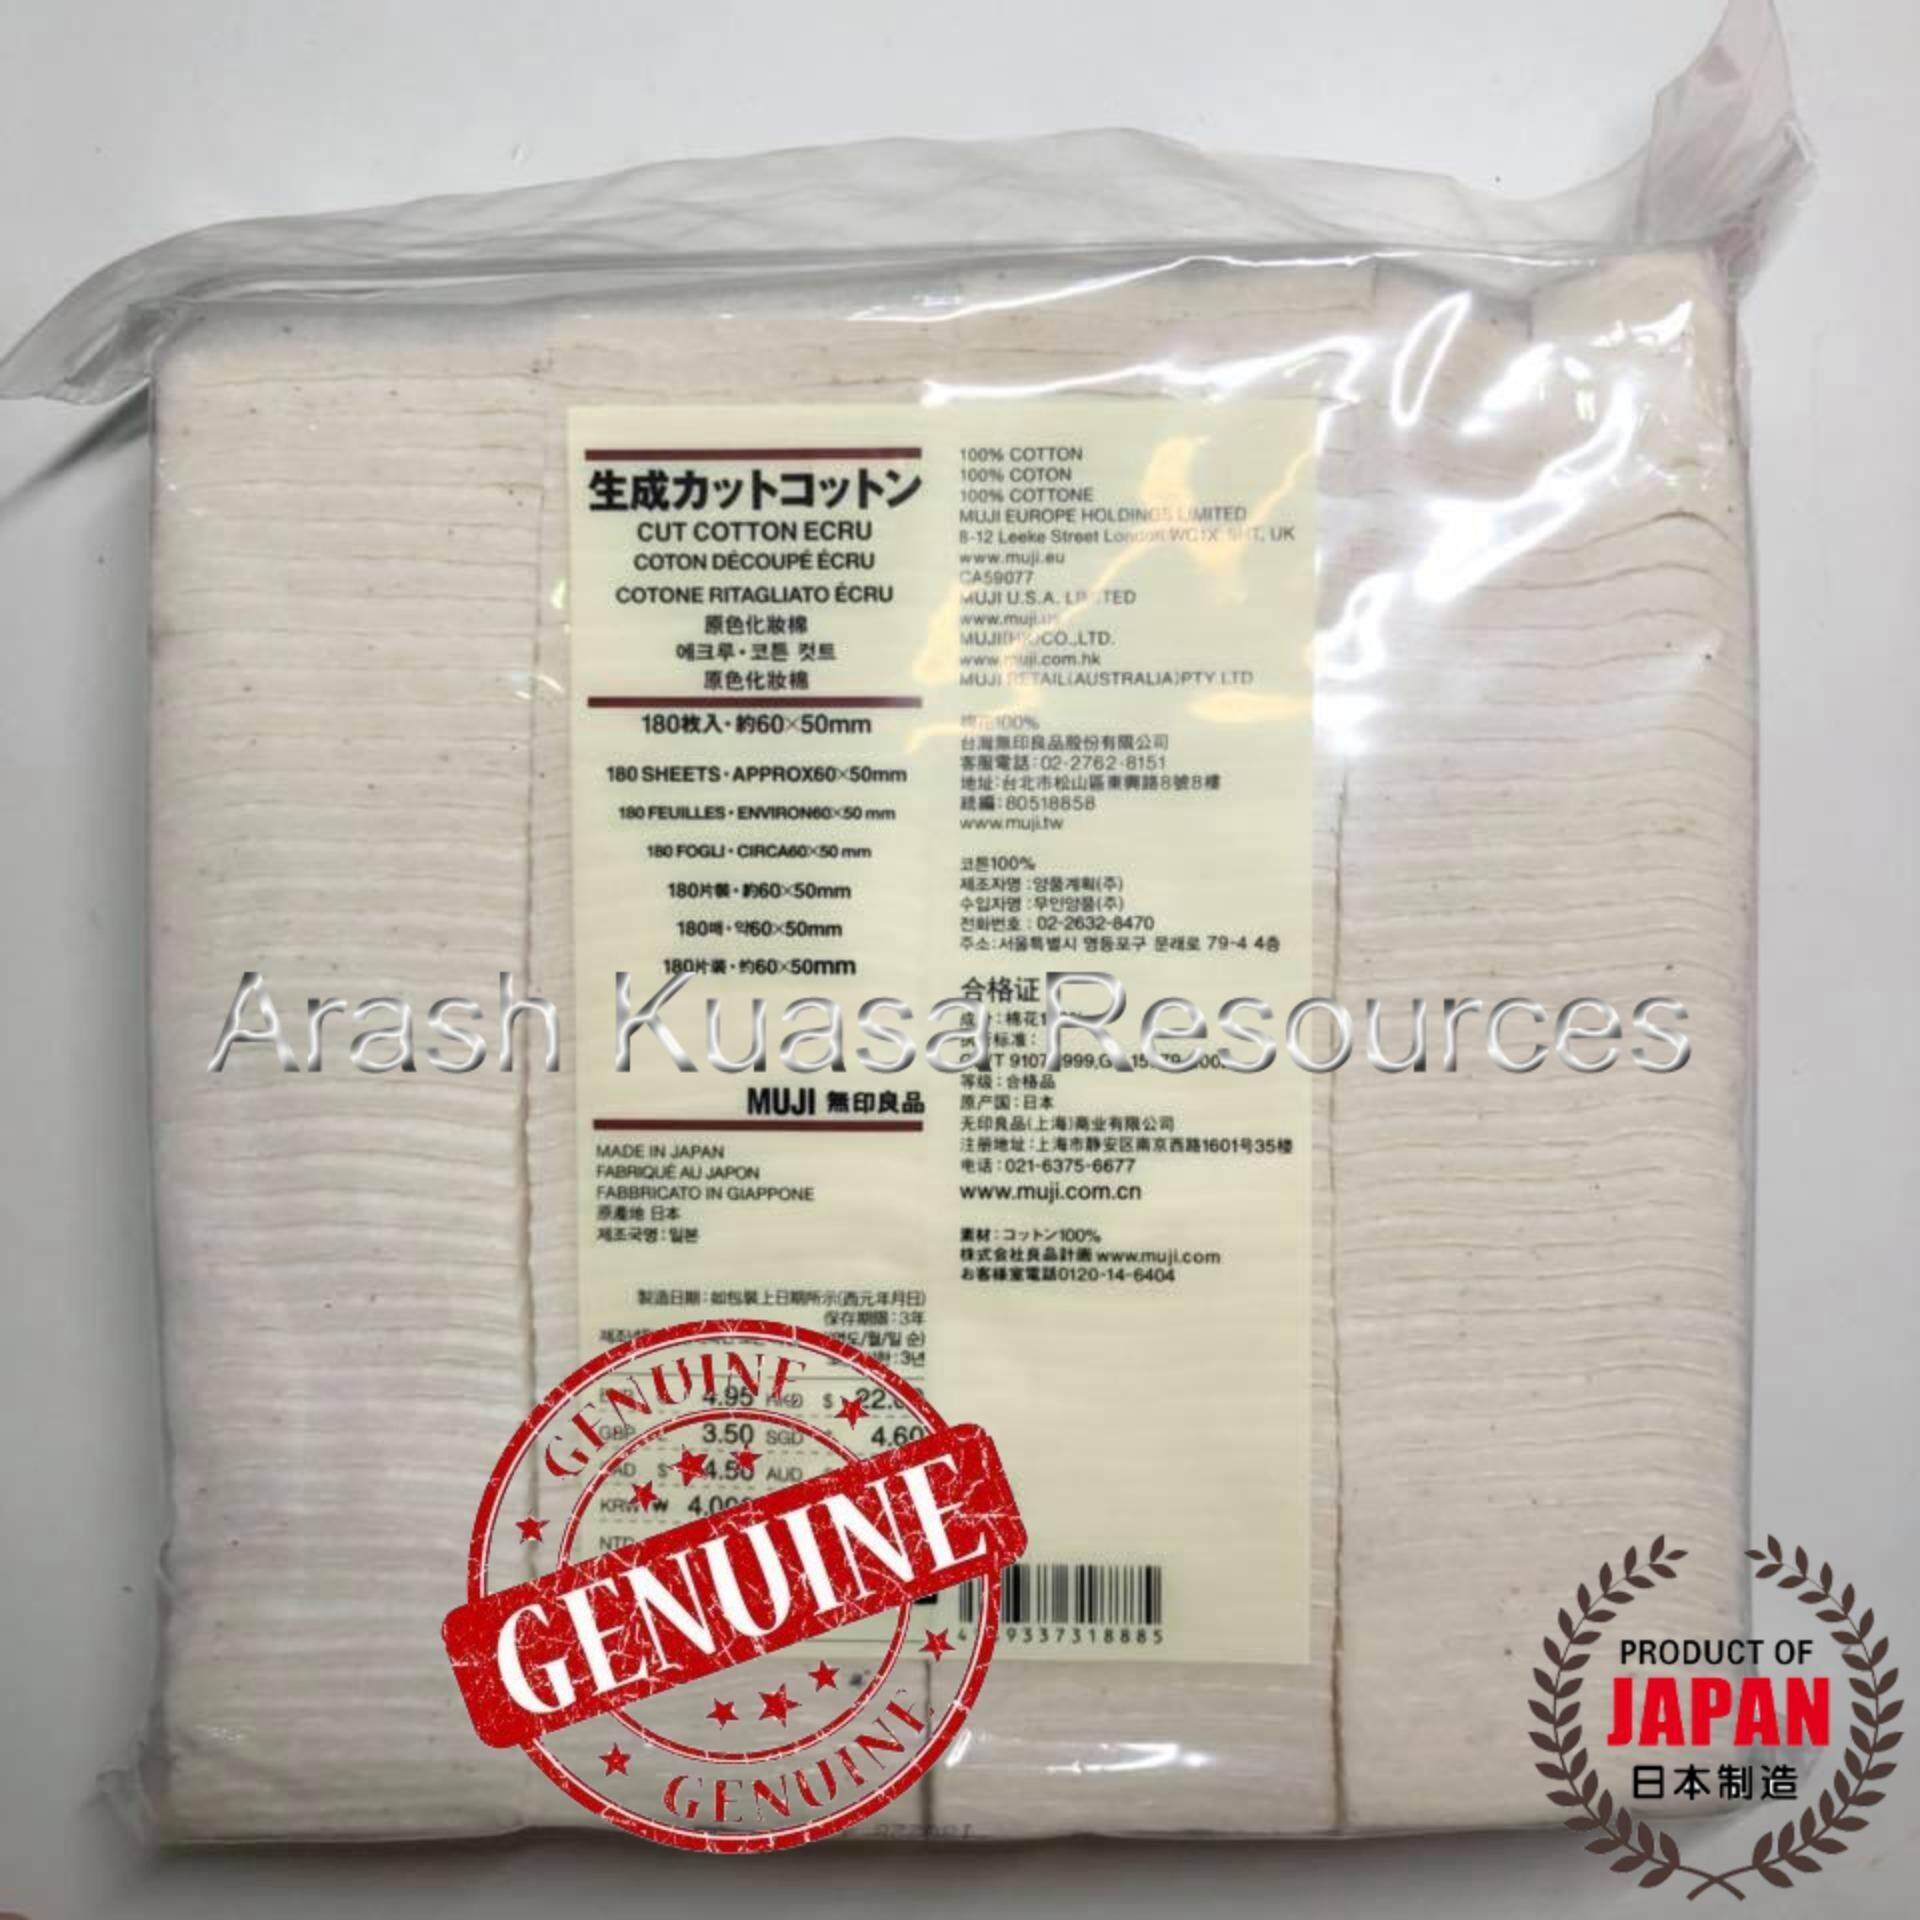 Electronic Cigarettes Accessories Best Price In Malaysia Bacon V2 Cotton For Vape 1 Pad Muji Japanese Organic 180sheet